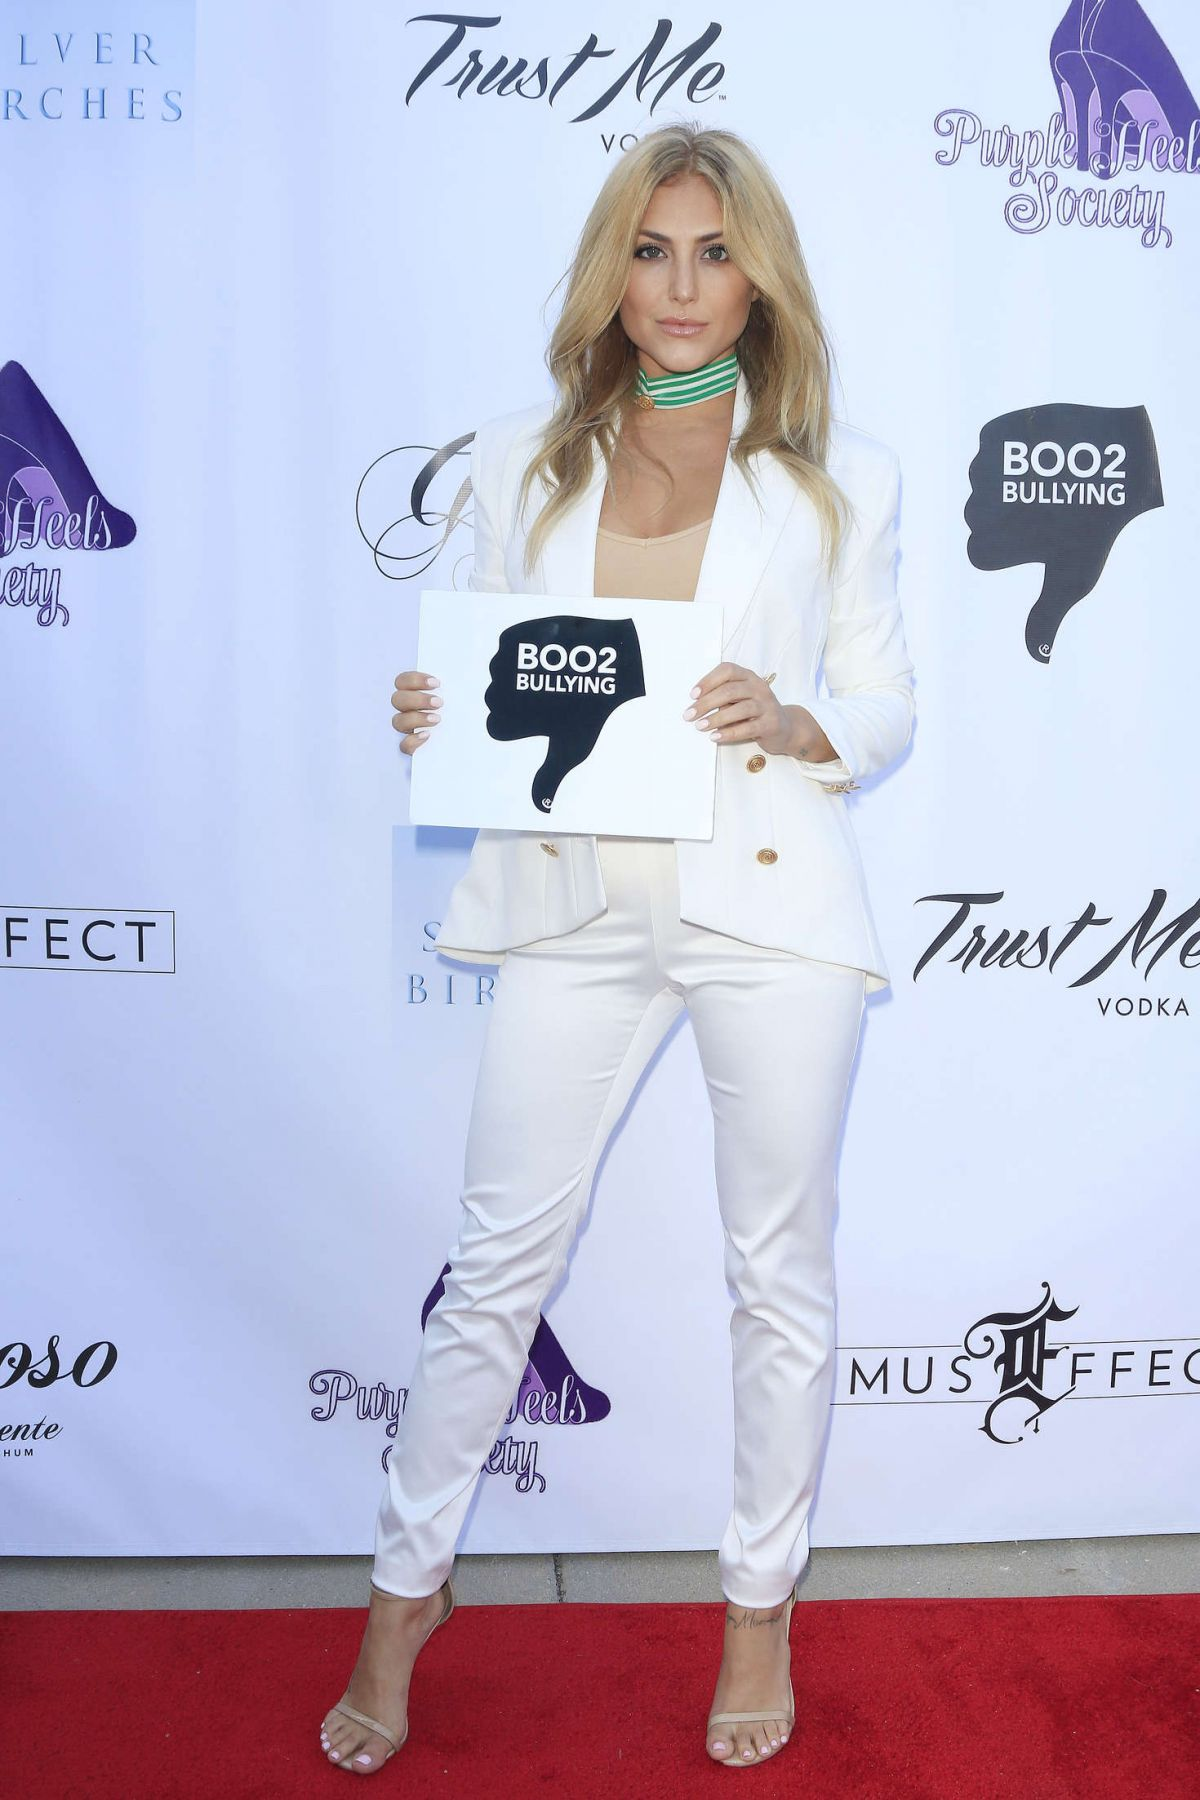 CASSIE SCERBO at boo2bullying Spring Soiree in Los Angeles 05/07/2016